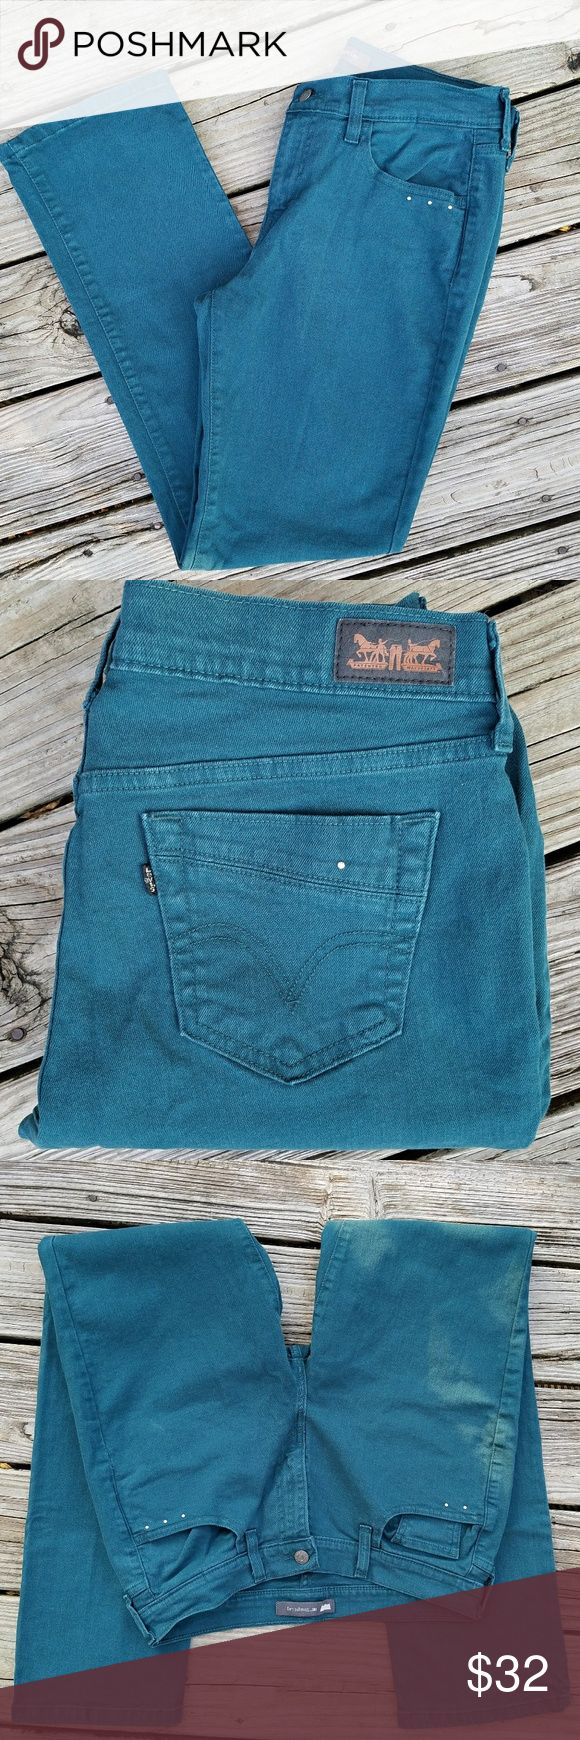 """Levis 505 Straight Leg Jeans Levis 505 Jeans Size 8 Straight Leg Beaded front and Back Pockets Waist 29"""" Length 32 Like New Condition Levi's Jeans Boot Cut"""